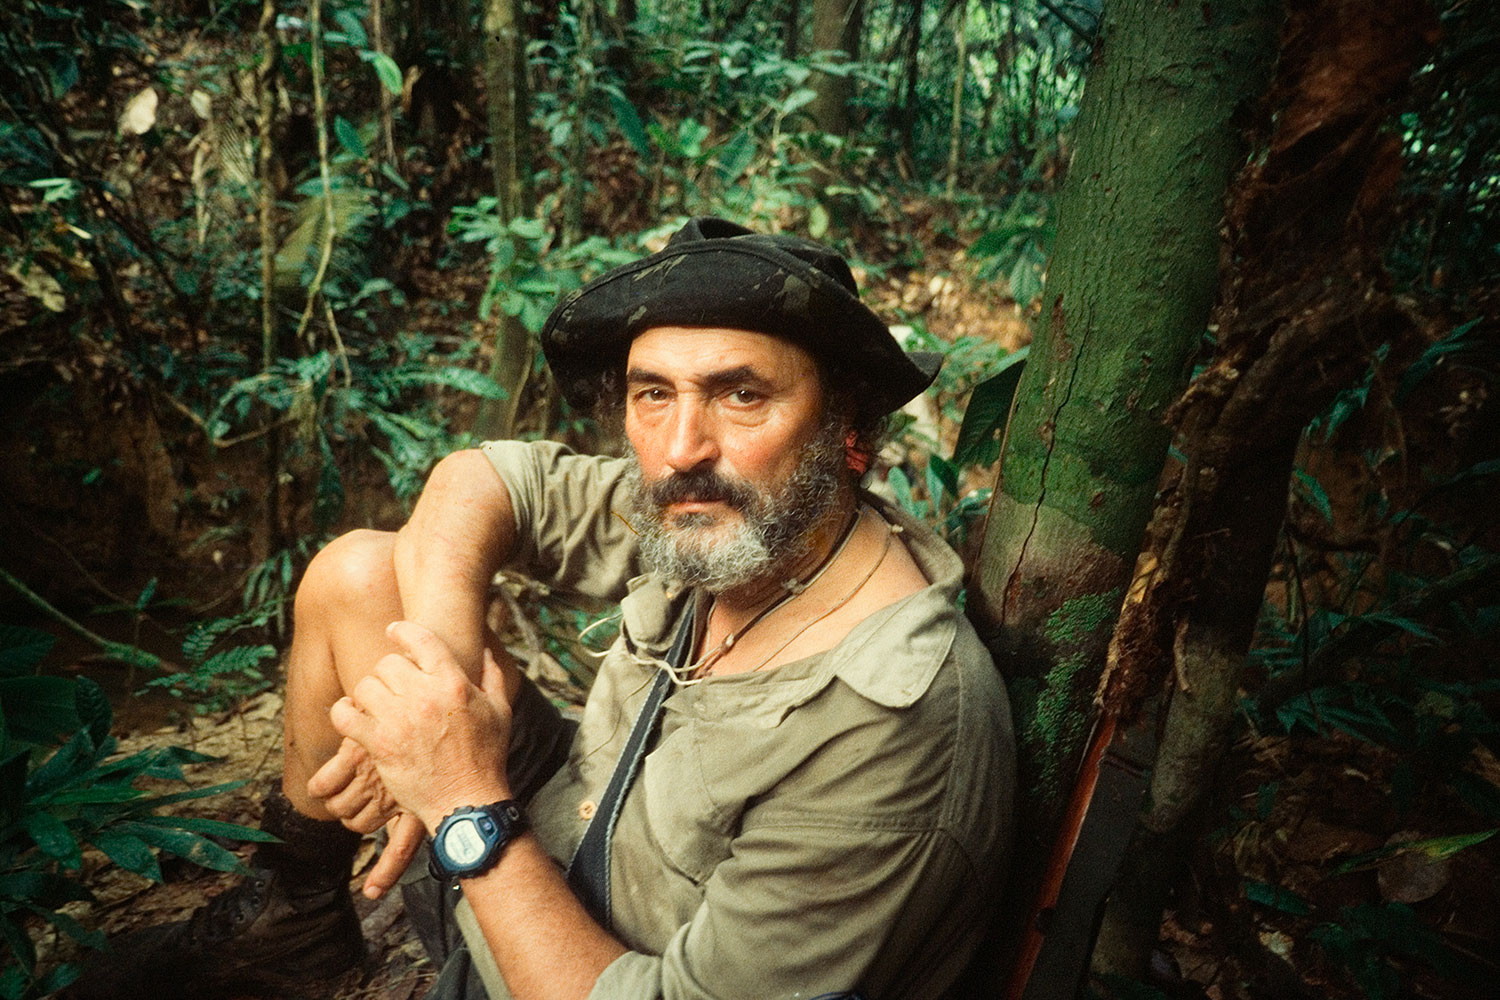 Explorer and indigenous-rights activist Sydney Possuelo on expedition, 2002.